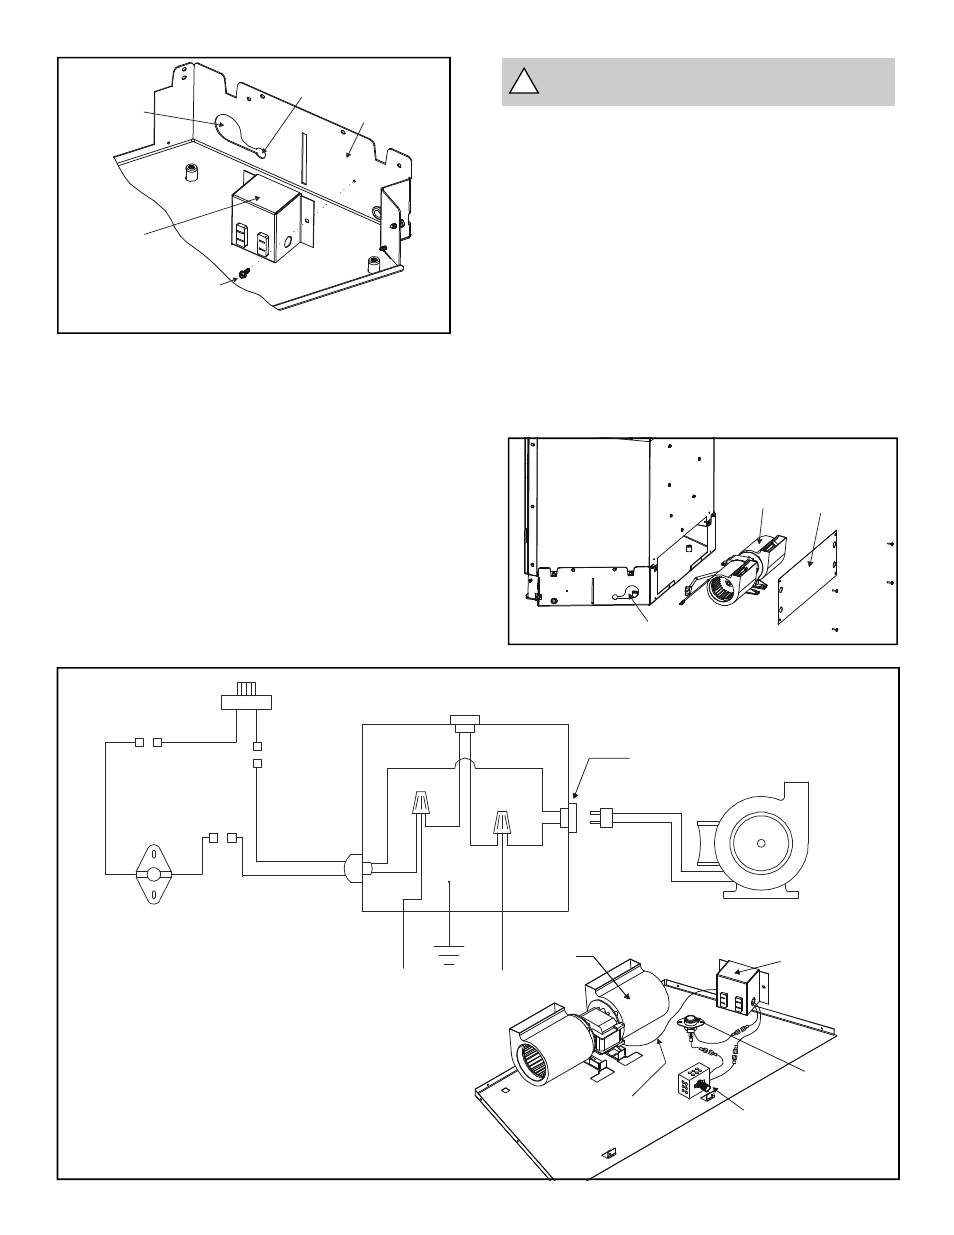 hight resolution of figure 10 fan wiring diagram warning must use the cord supplied with the j box figure 11 heat glo fireplace heat n glo fb in user manual page 20